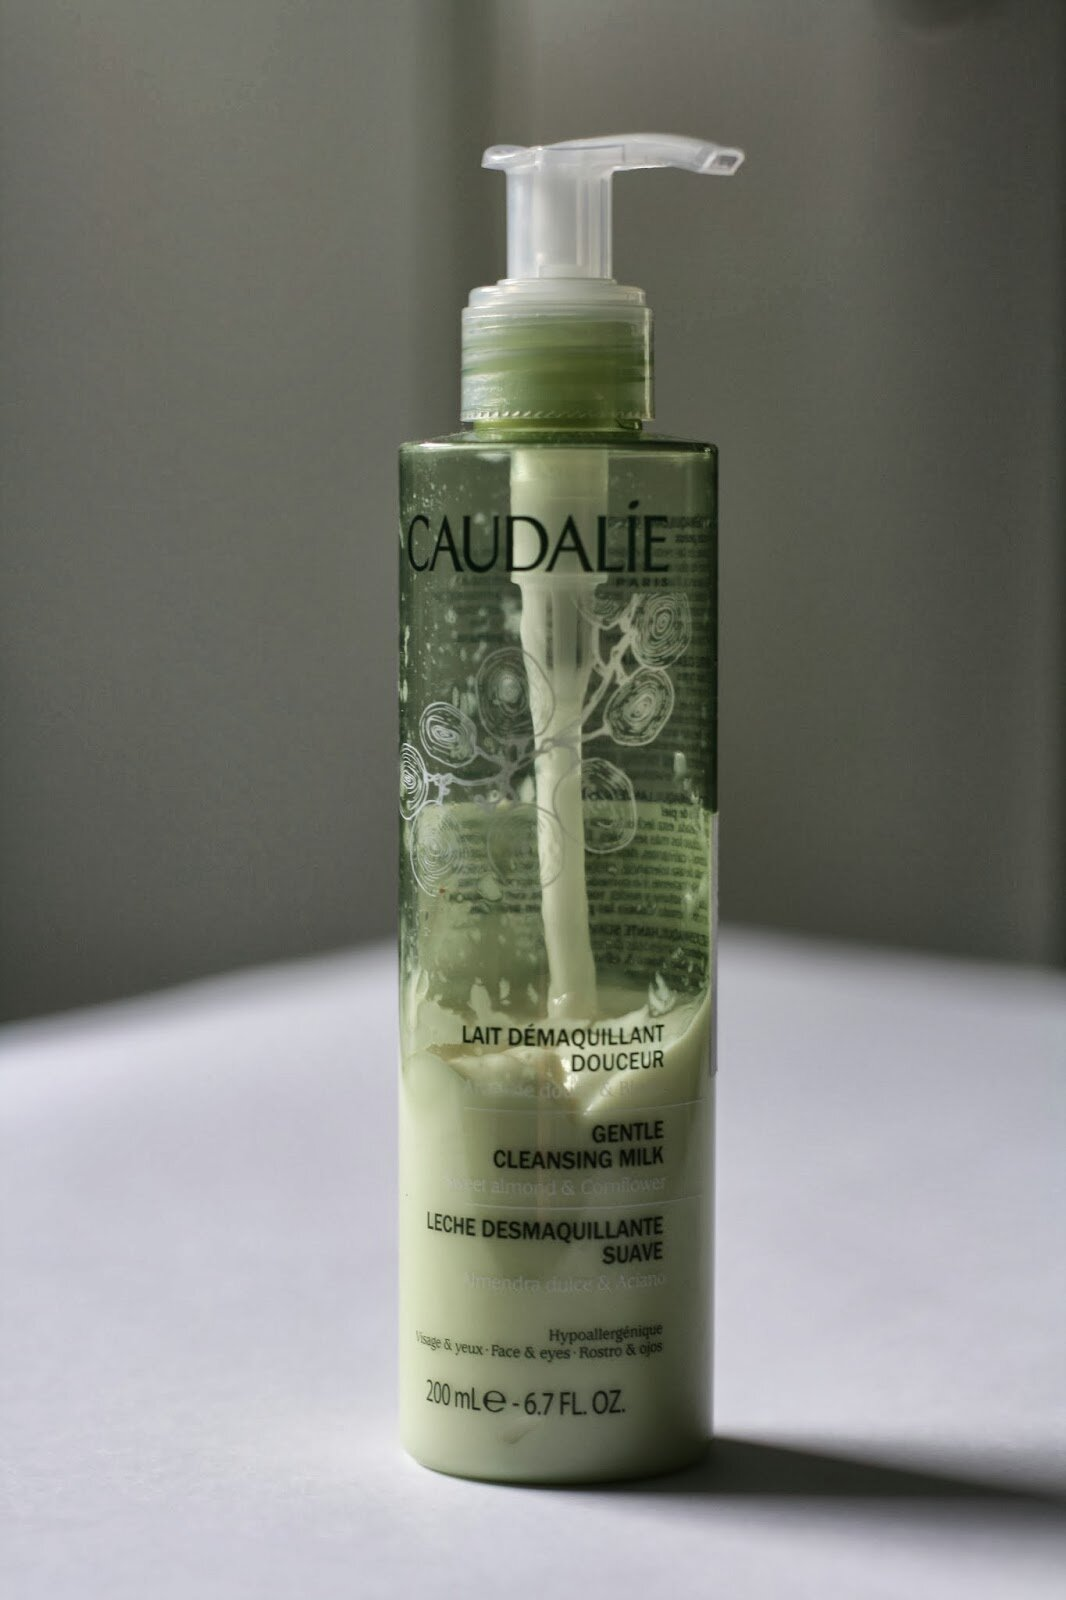 Review sữa rửa mặt Caudalie Gentle Cleasing Milk